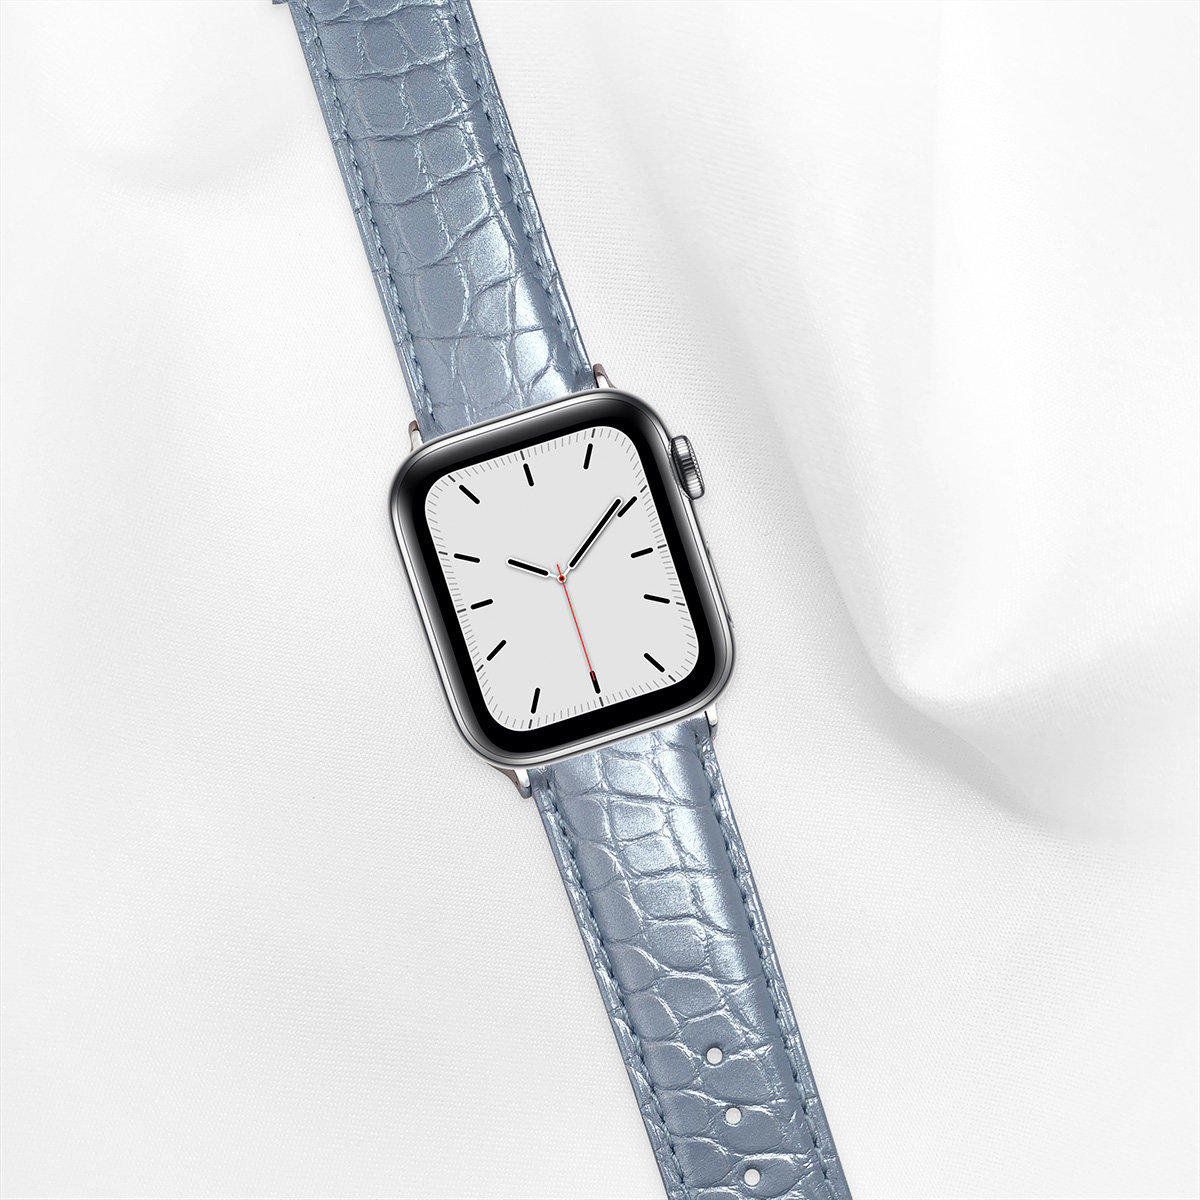 Pearl Alligator 40mm Apple Watch 5 Strap, Pearl Baby Blue, Round Scales, for Small Casing